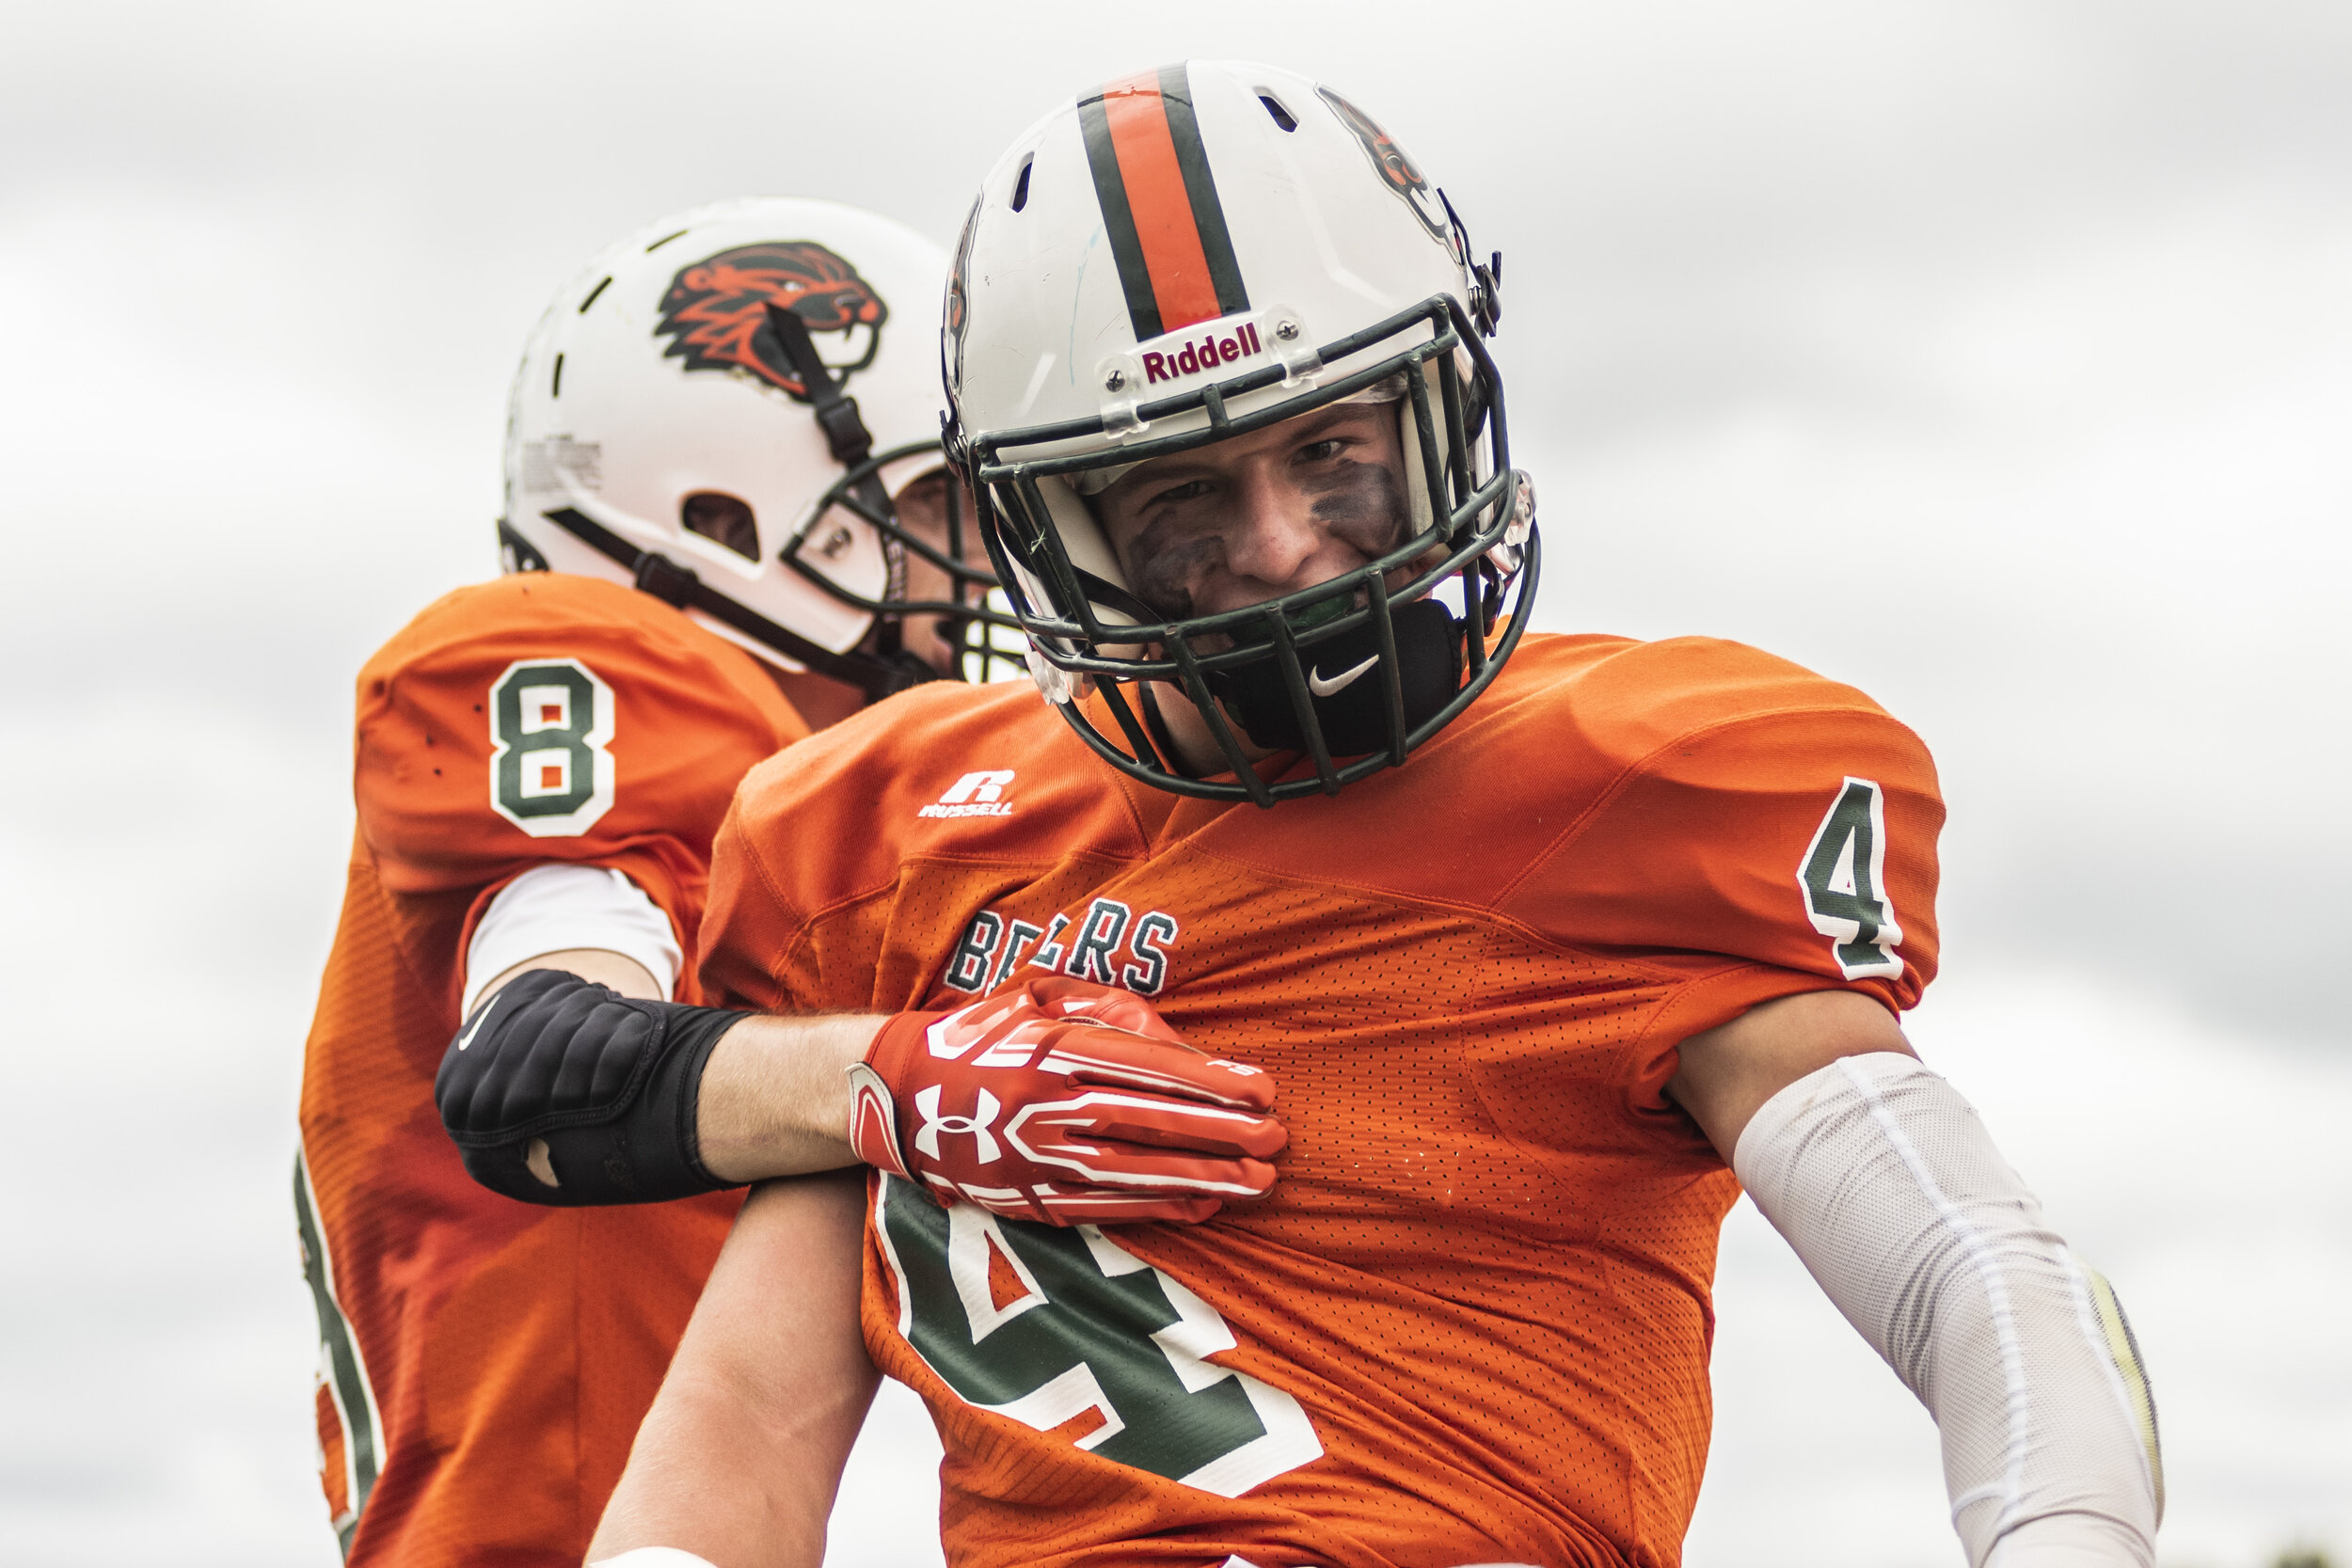 Noah Zerr, of Beaver River, celebrates after successfully catching a pass in the end zone to score against Sandy Creek in Beaver Falls.